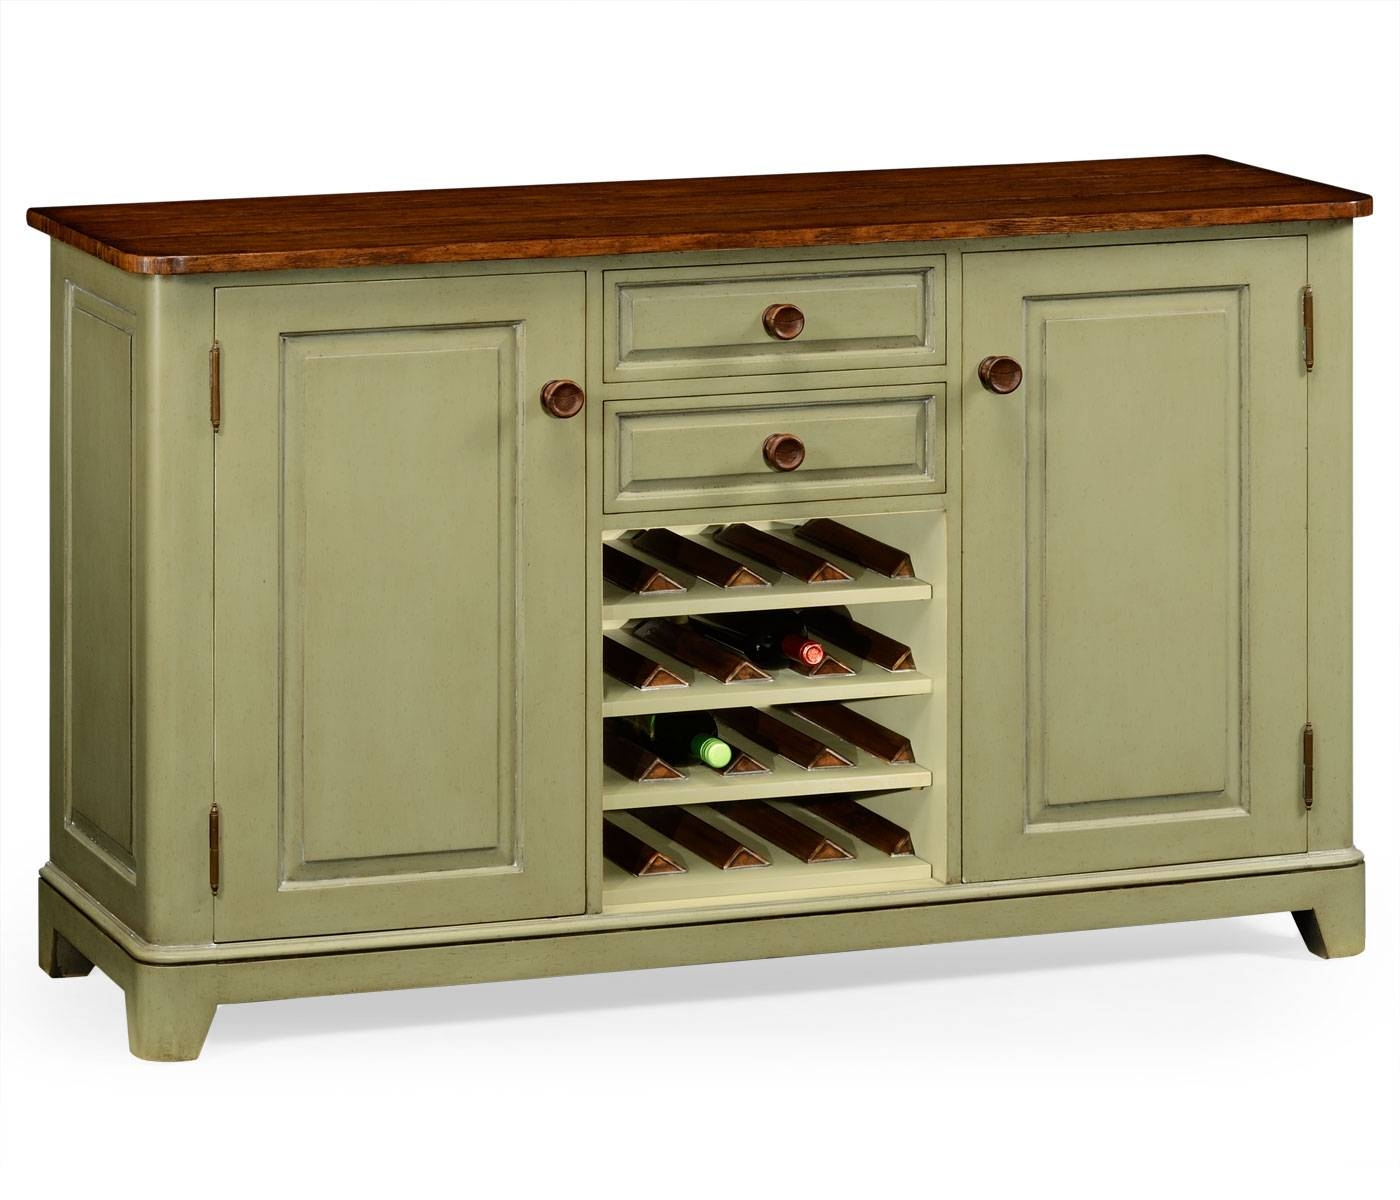 Things To Know About Sideboard With Wine Racks Bonnie Is Good throughout Sideboards With Wine Rack (Image 15 of 15)